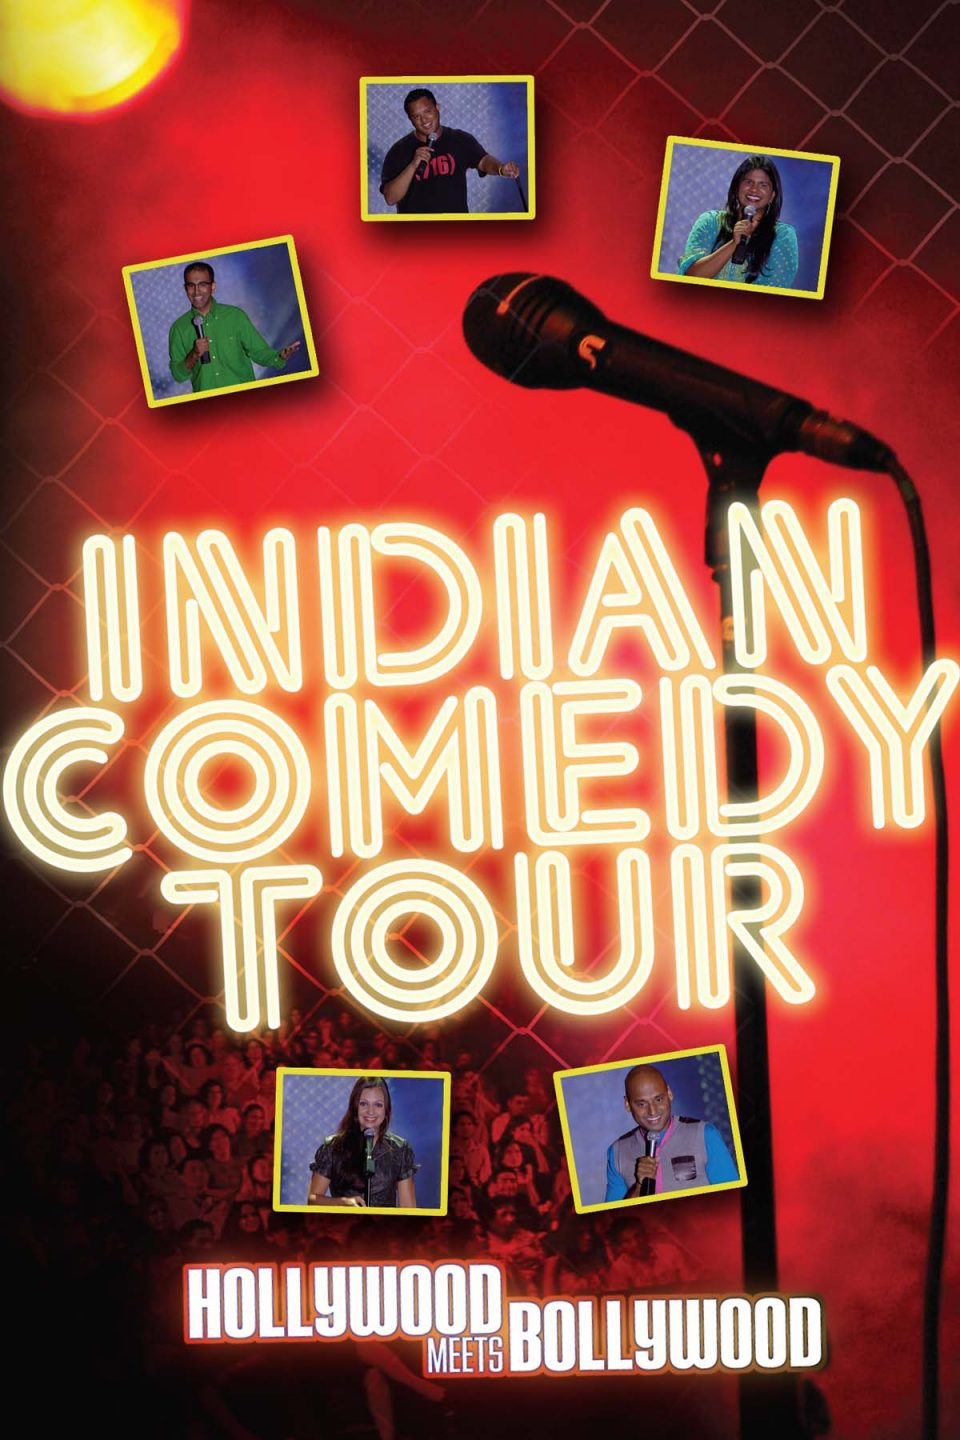 IndianComedyTour Premiere 1400